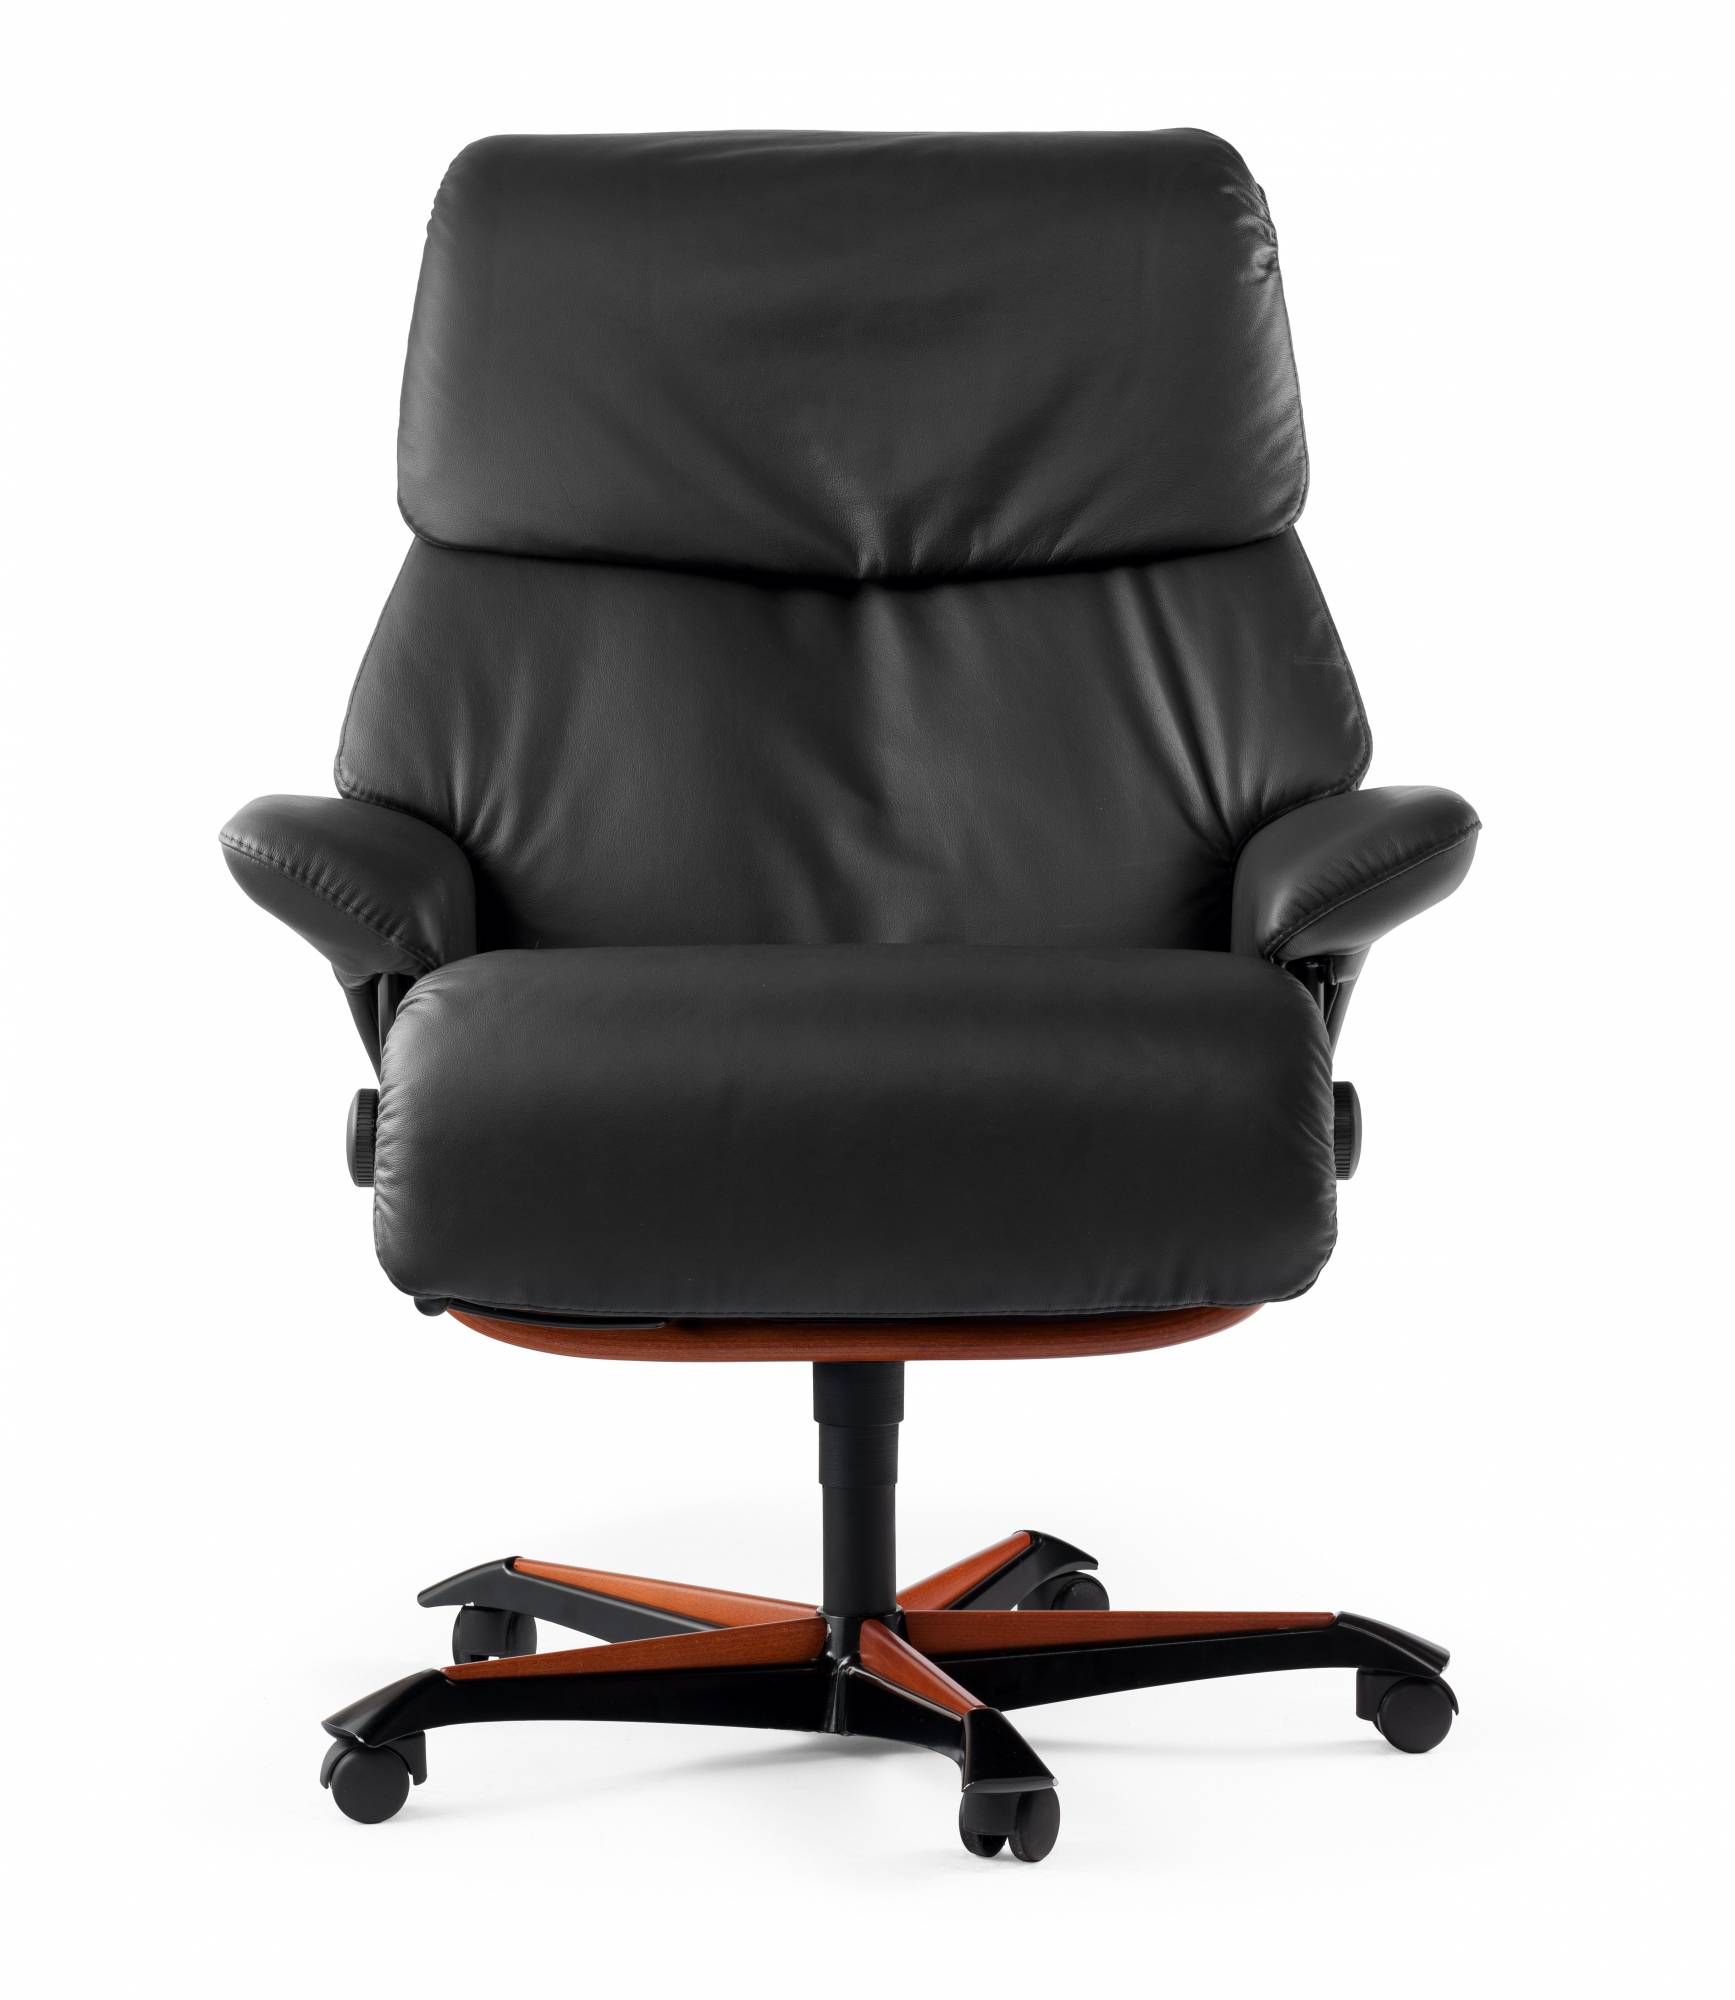 Stressless Office Chair Stressless Dream Office Chair Chairs Rodgers